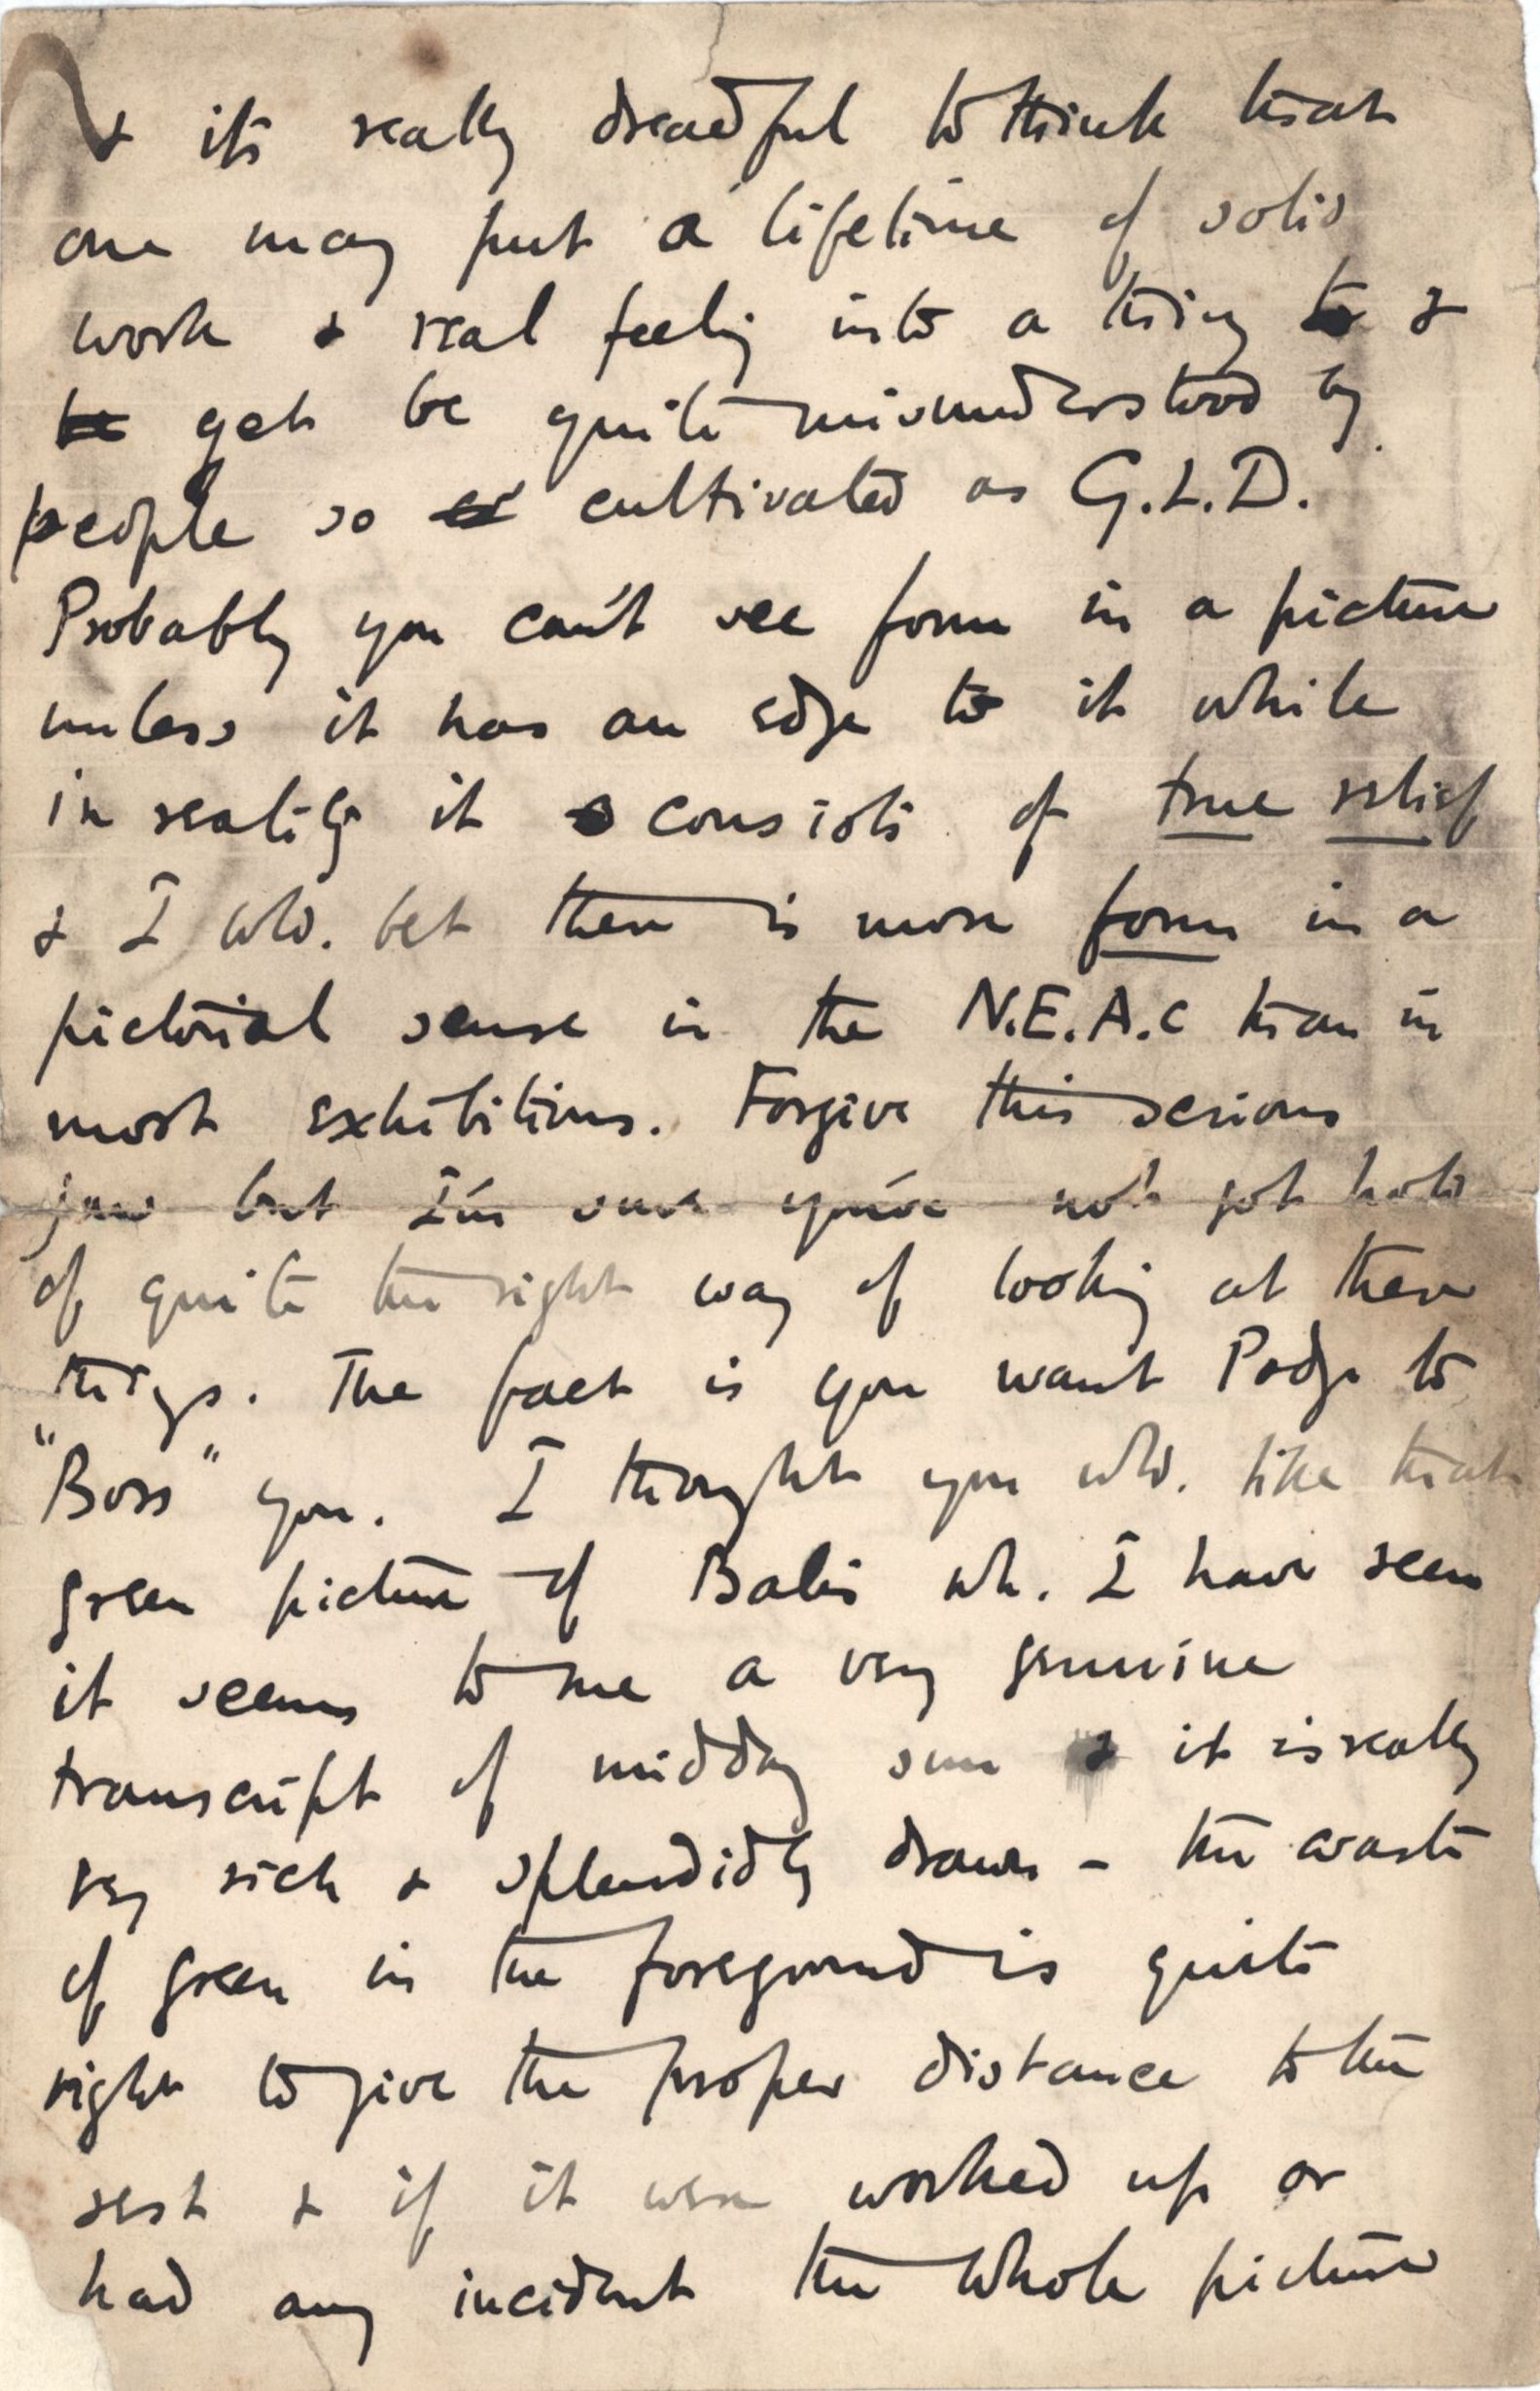 Second page of a letter from Roger Fry to Dickinson, 21 April 1891, regarding Florence. [REF/3/46/3]